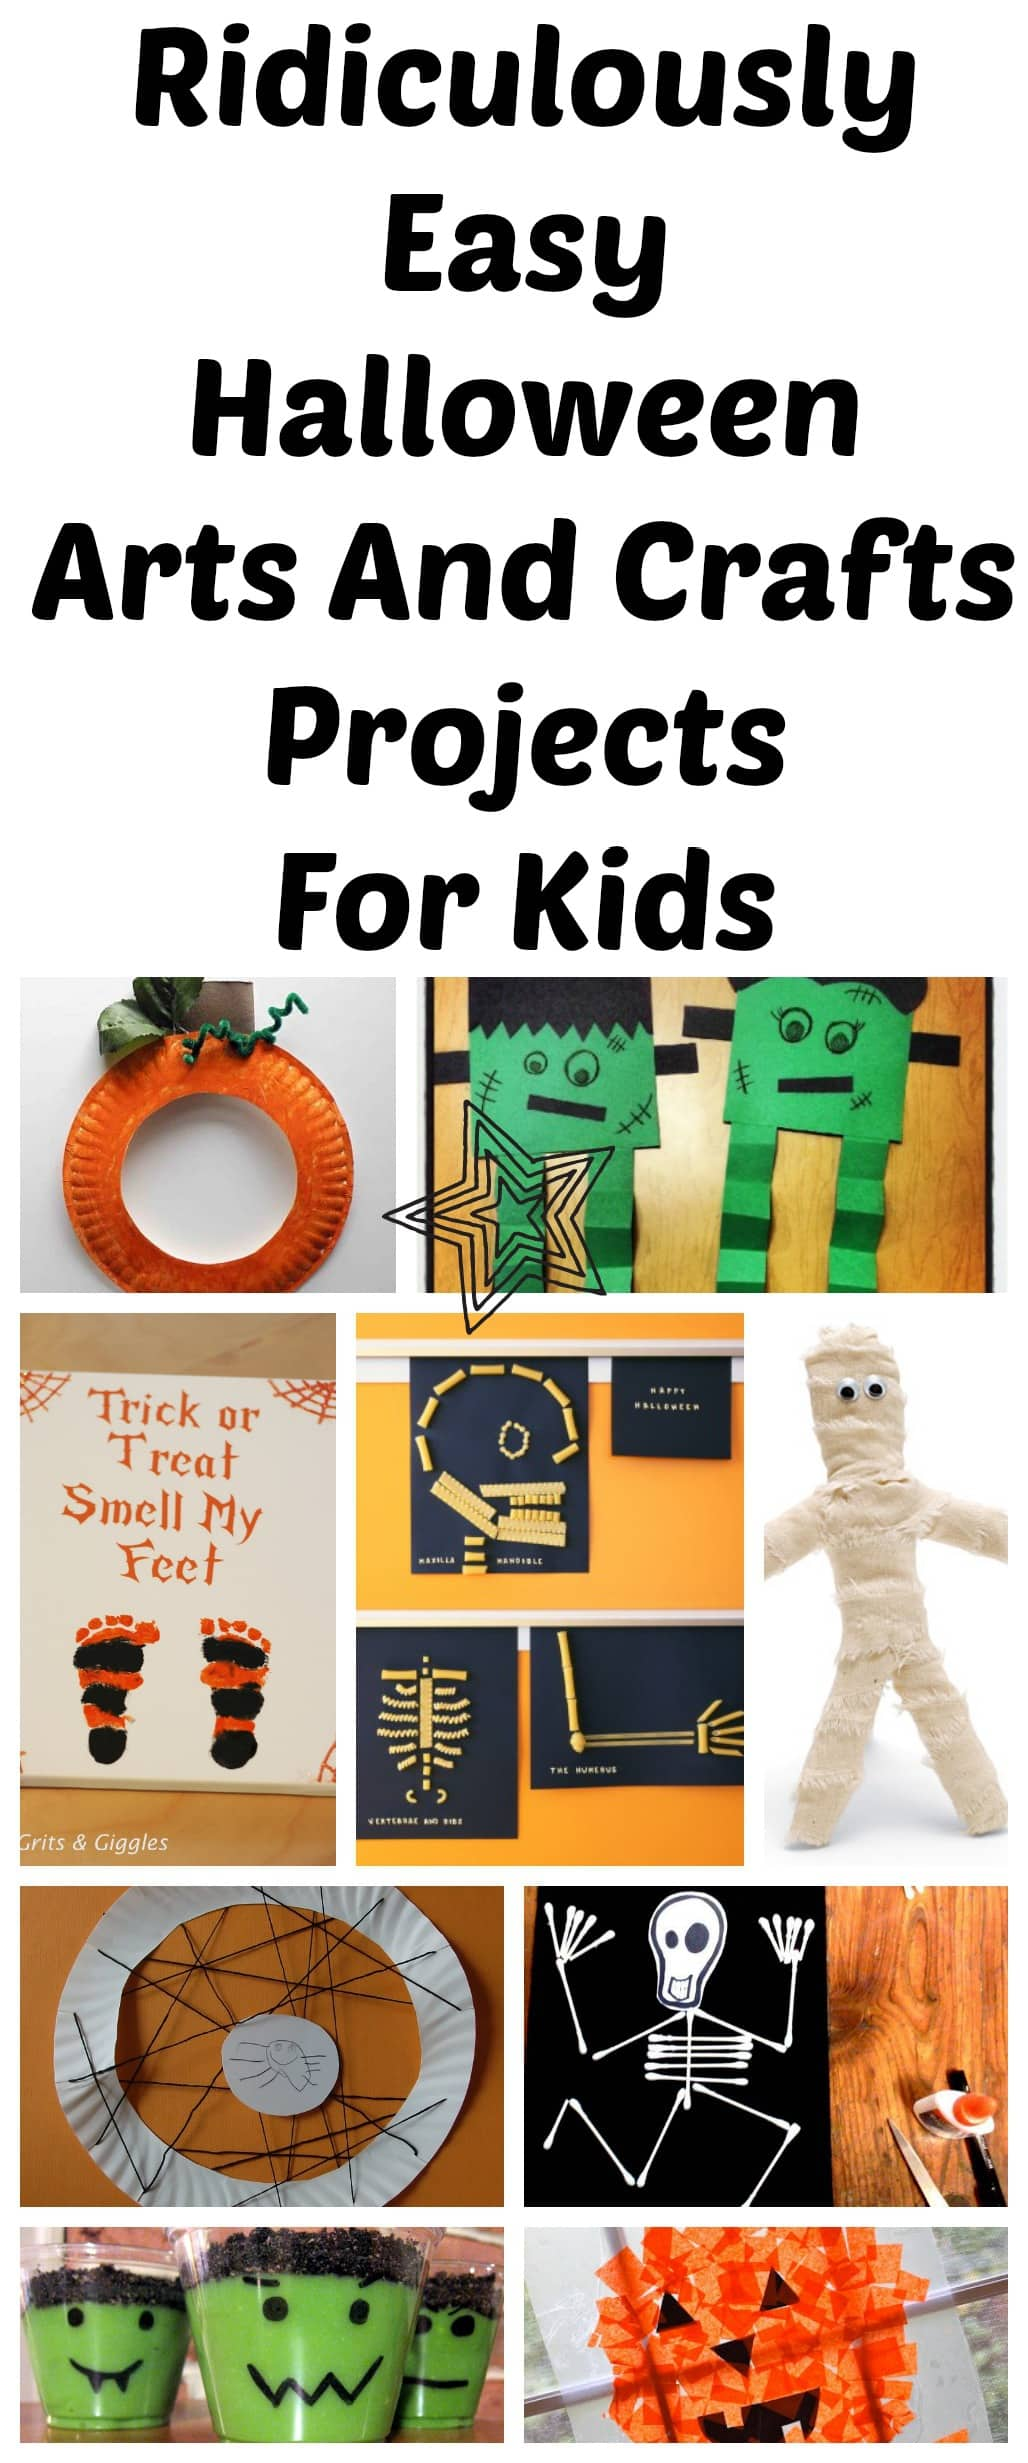 10 Ridiculously Easy Halloween Arts And Crafts Projects To